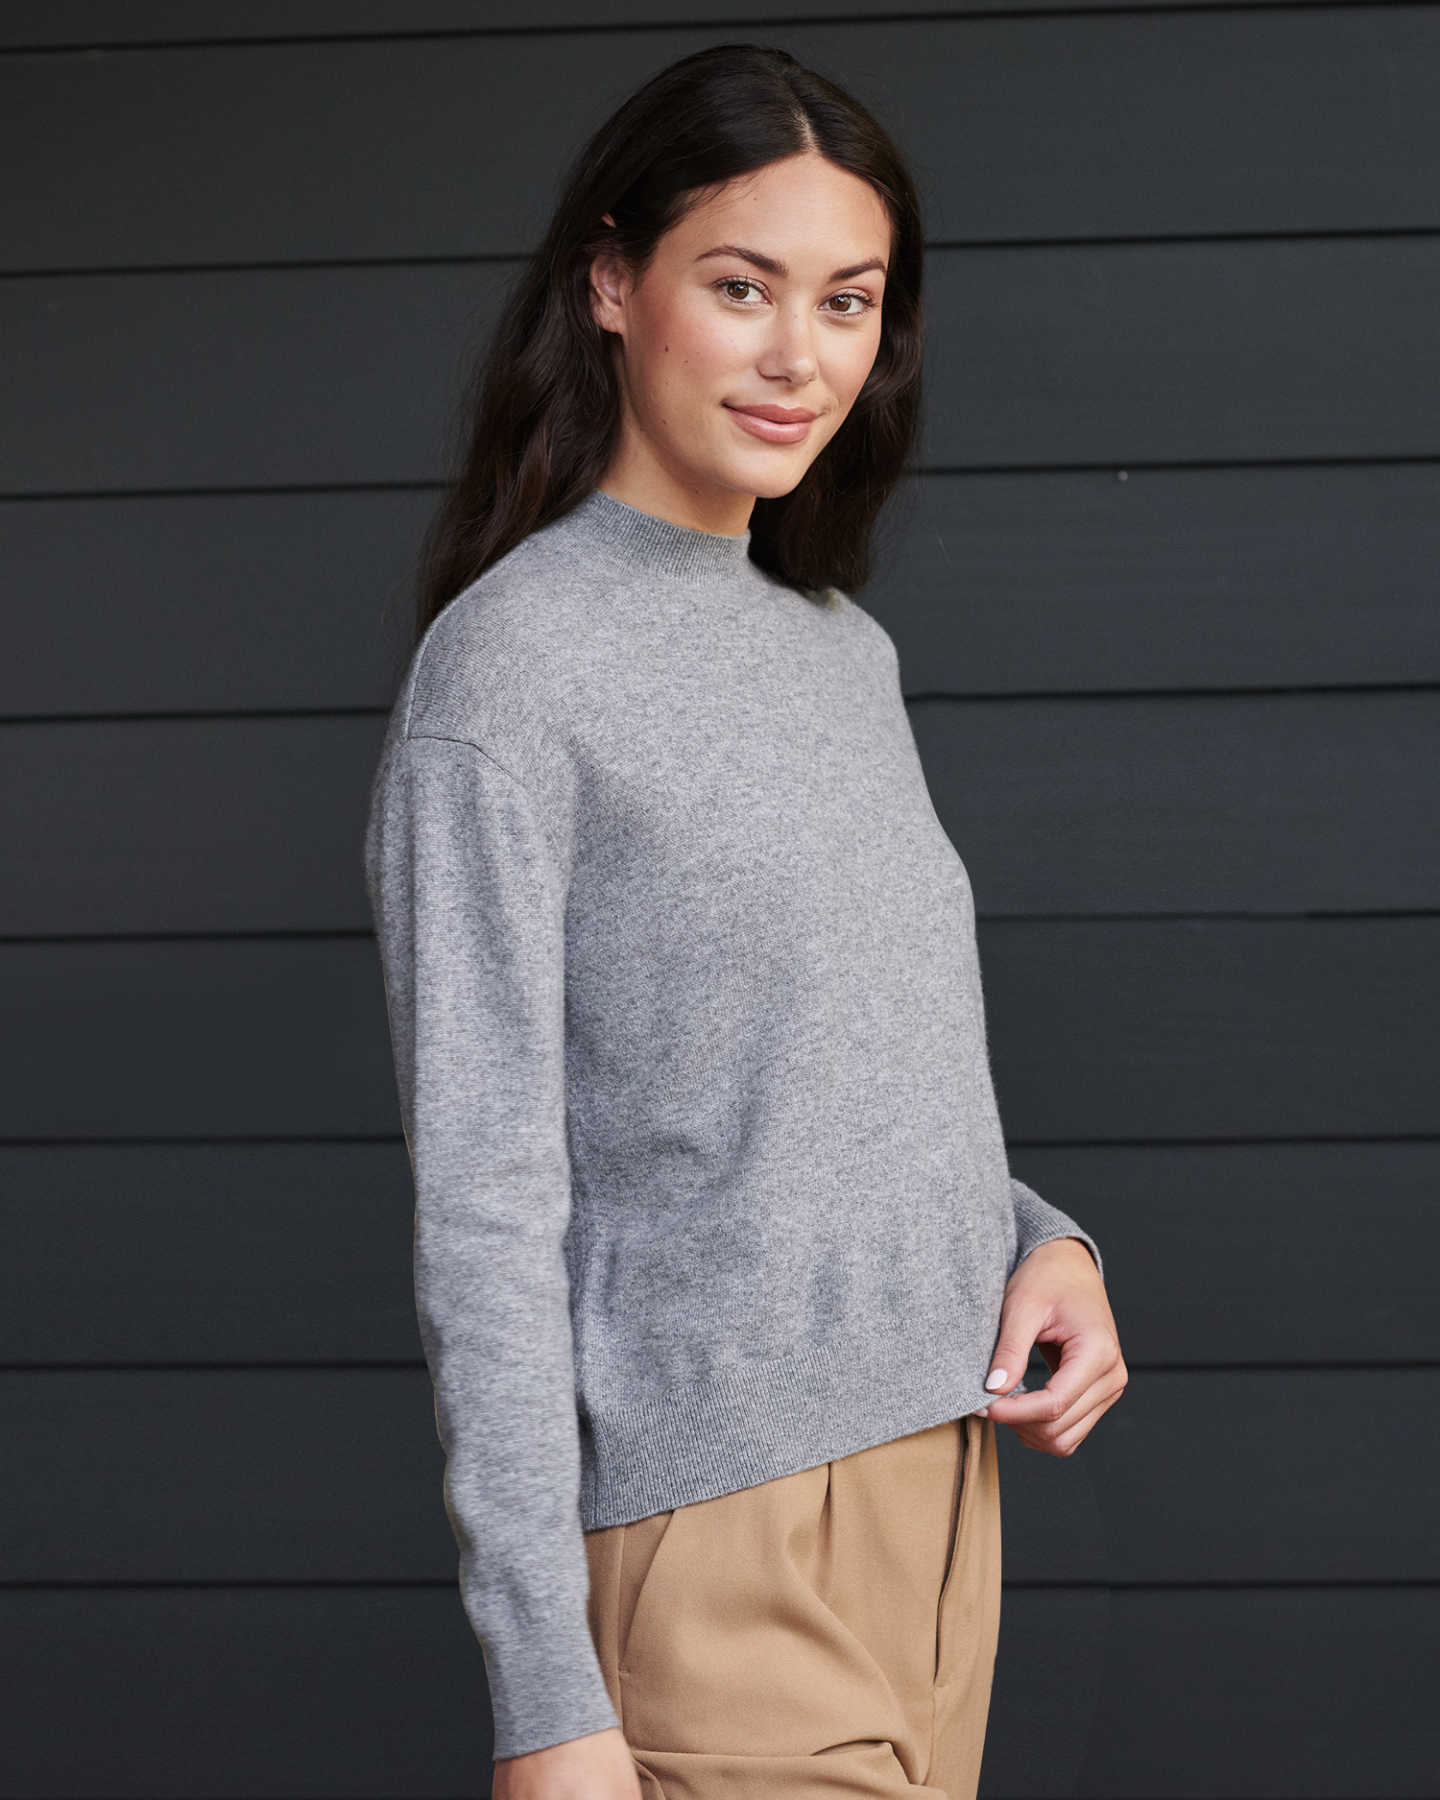 Woman wearing grey cashmere mockneck sweater smiling at the camera